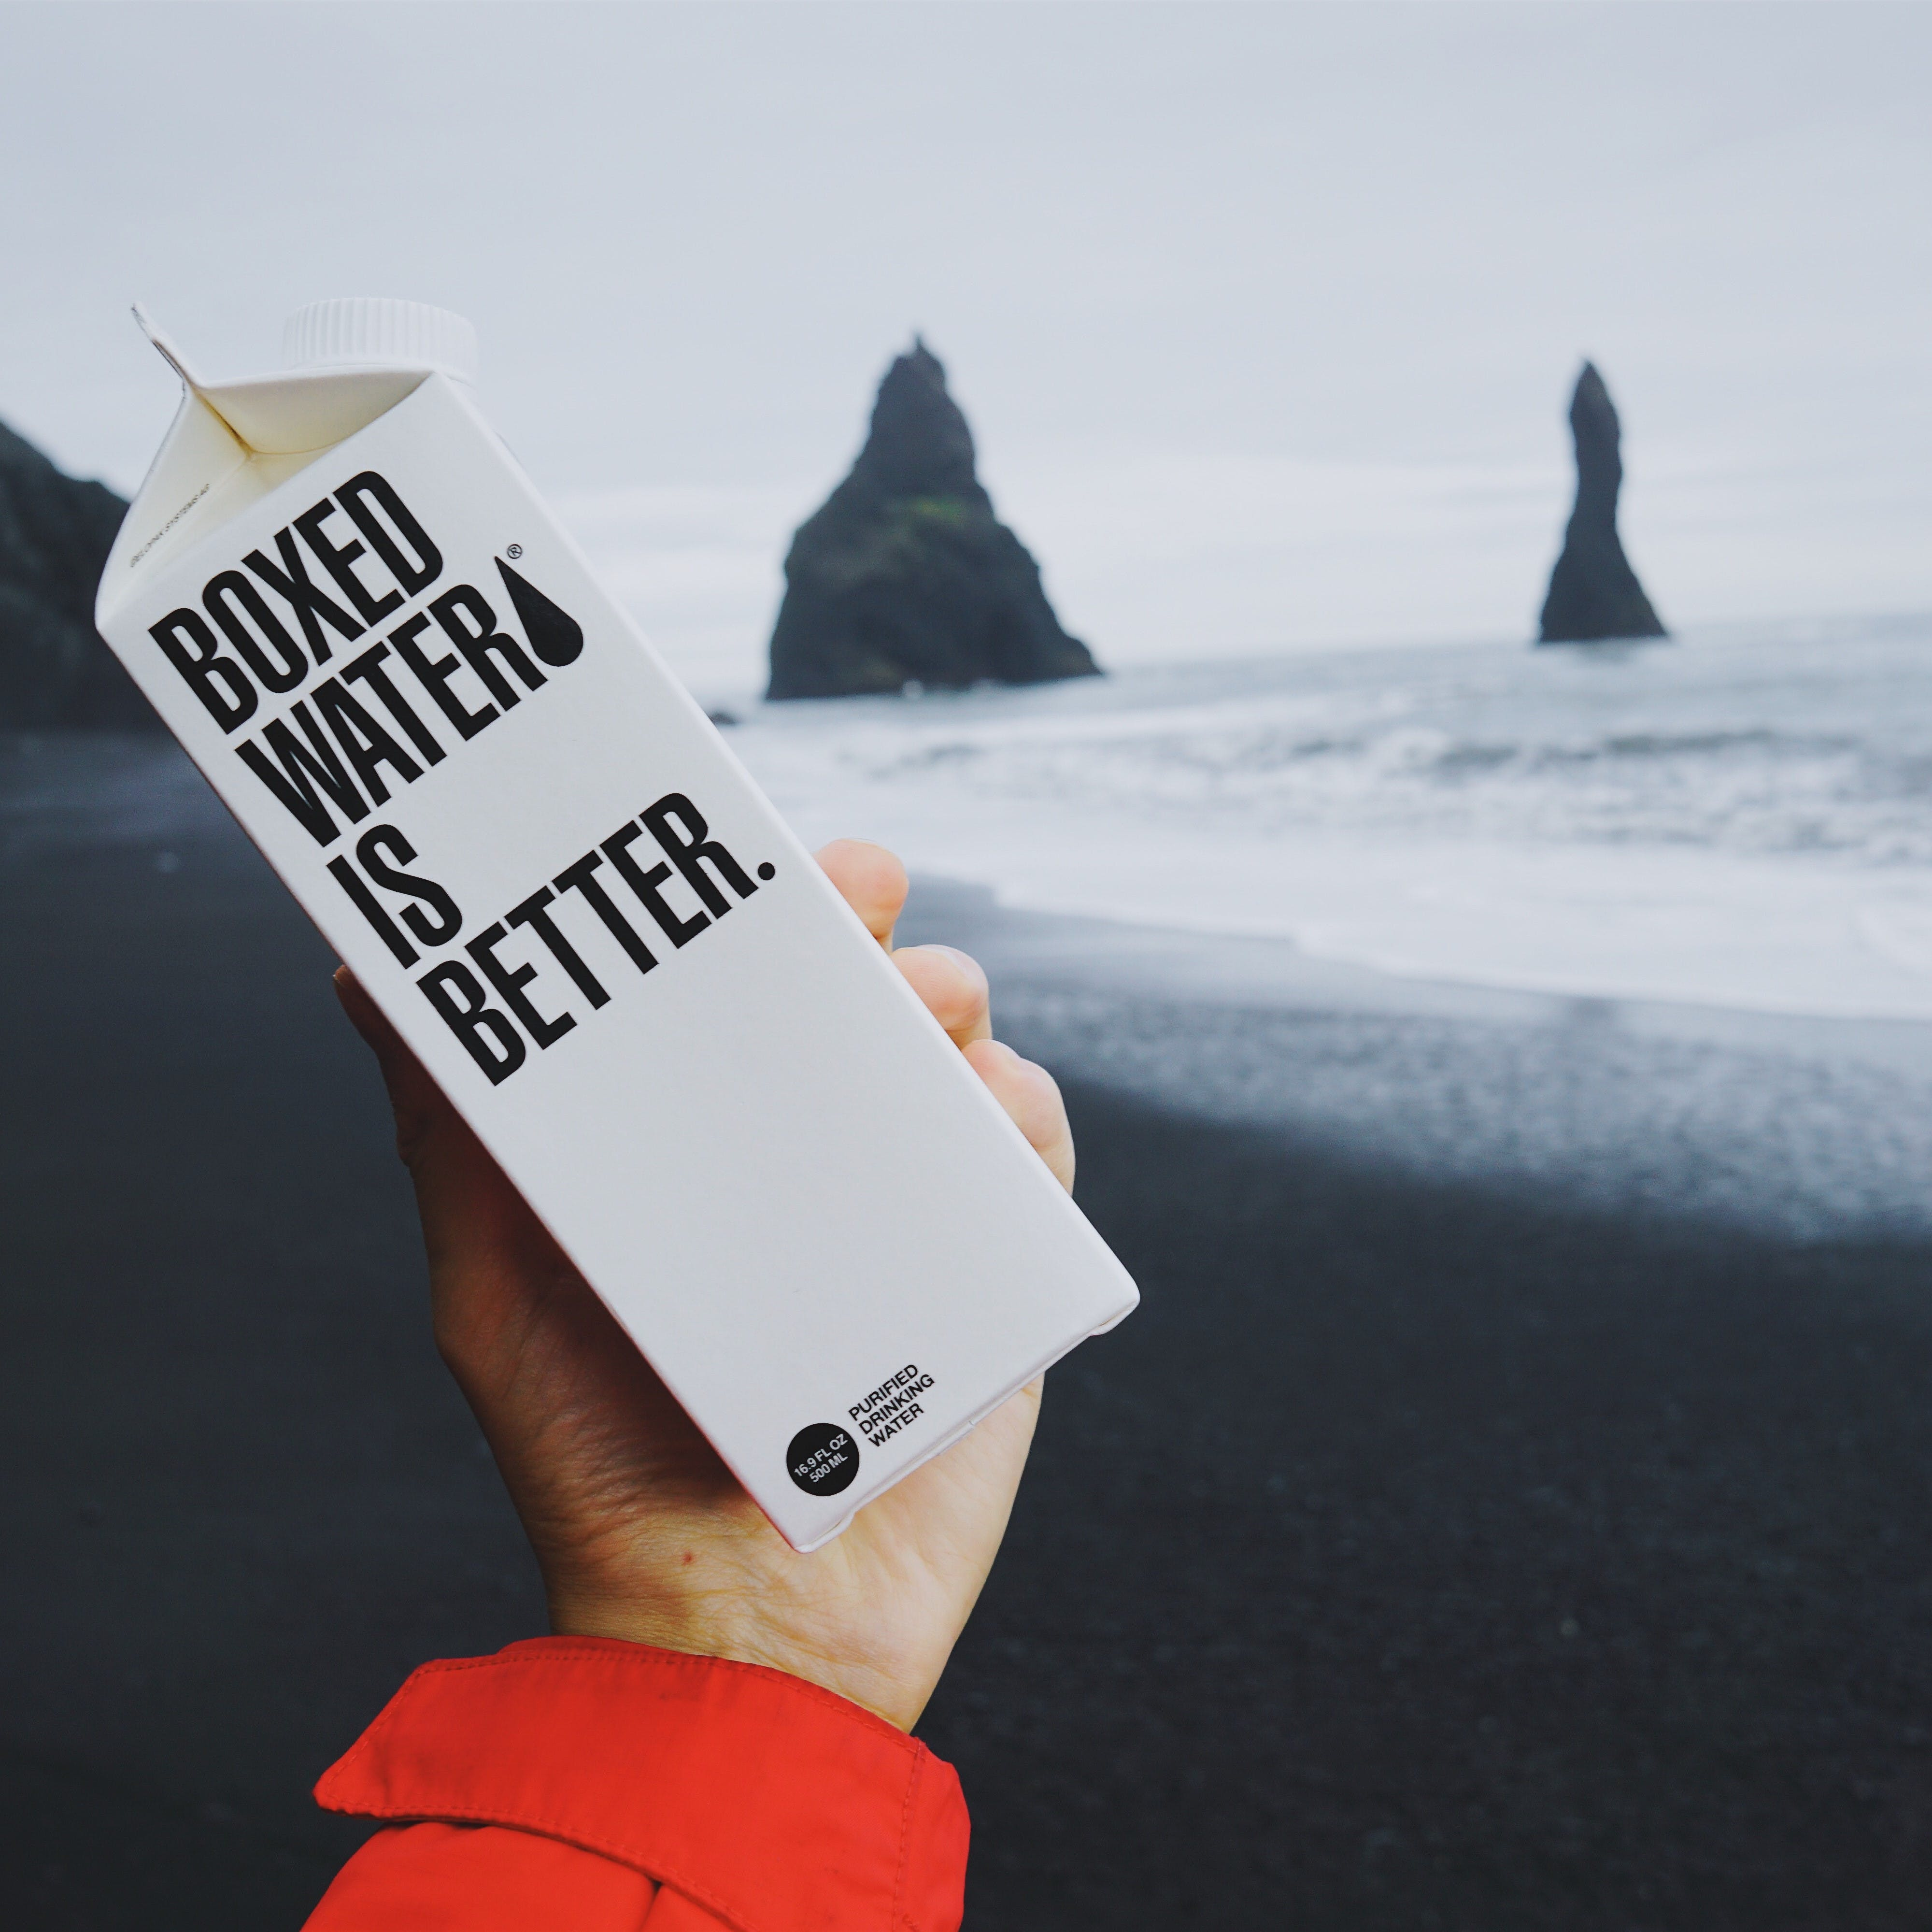 A person holding boxed water on a beach